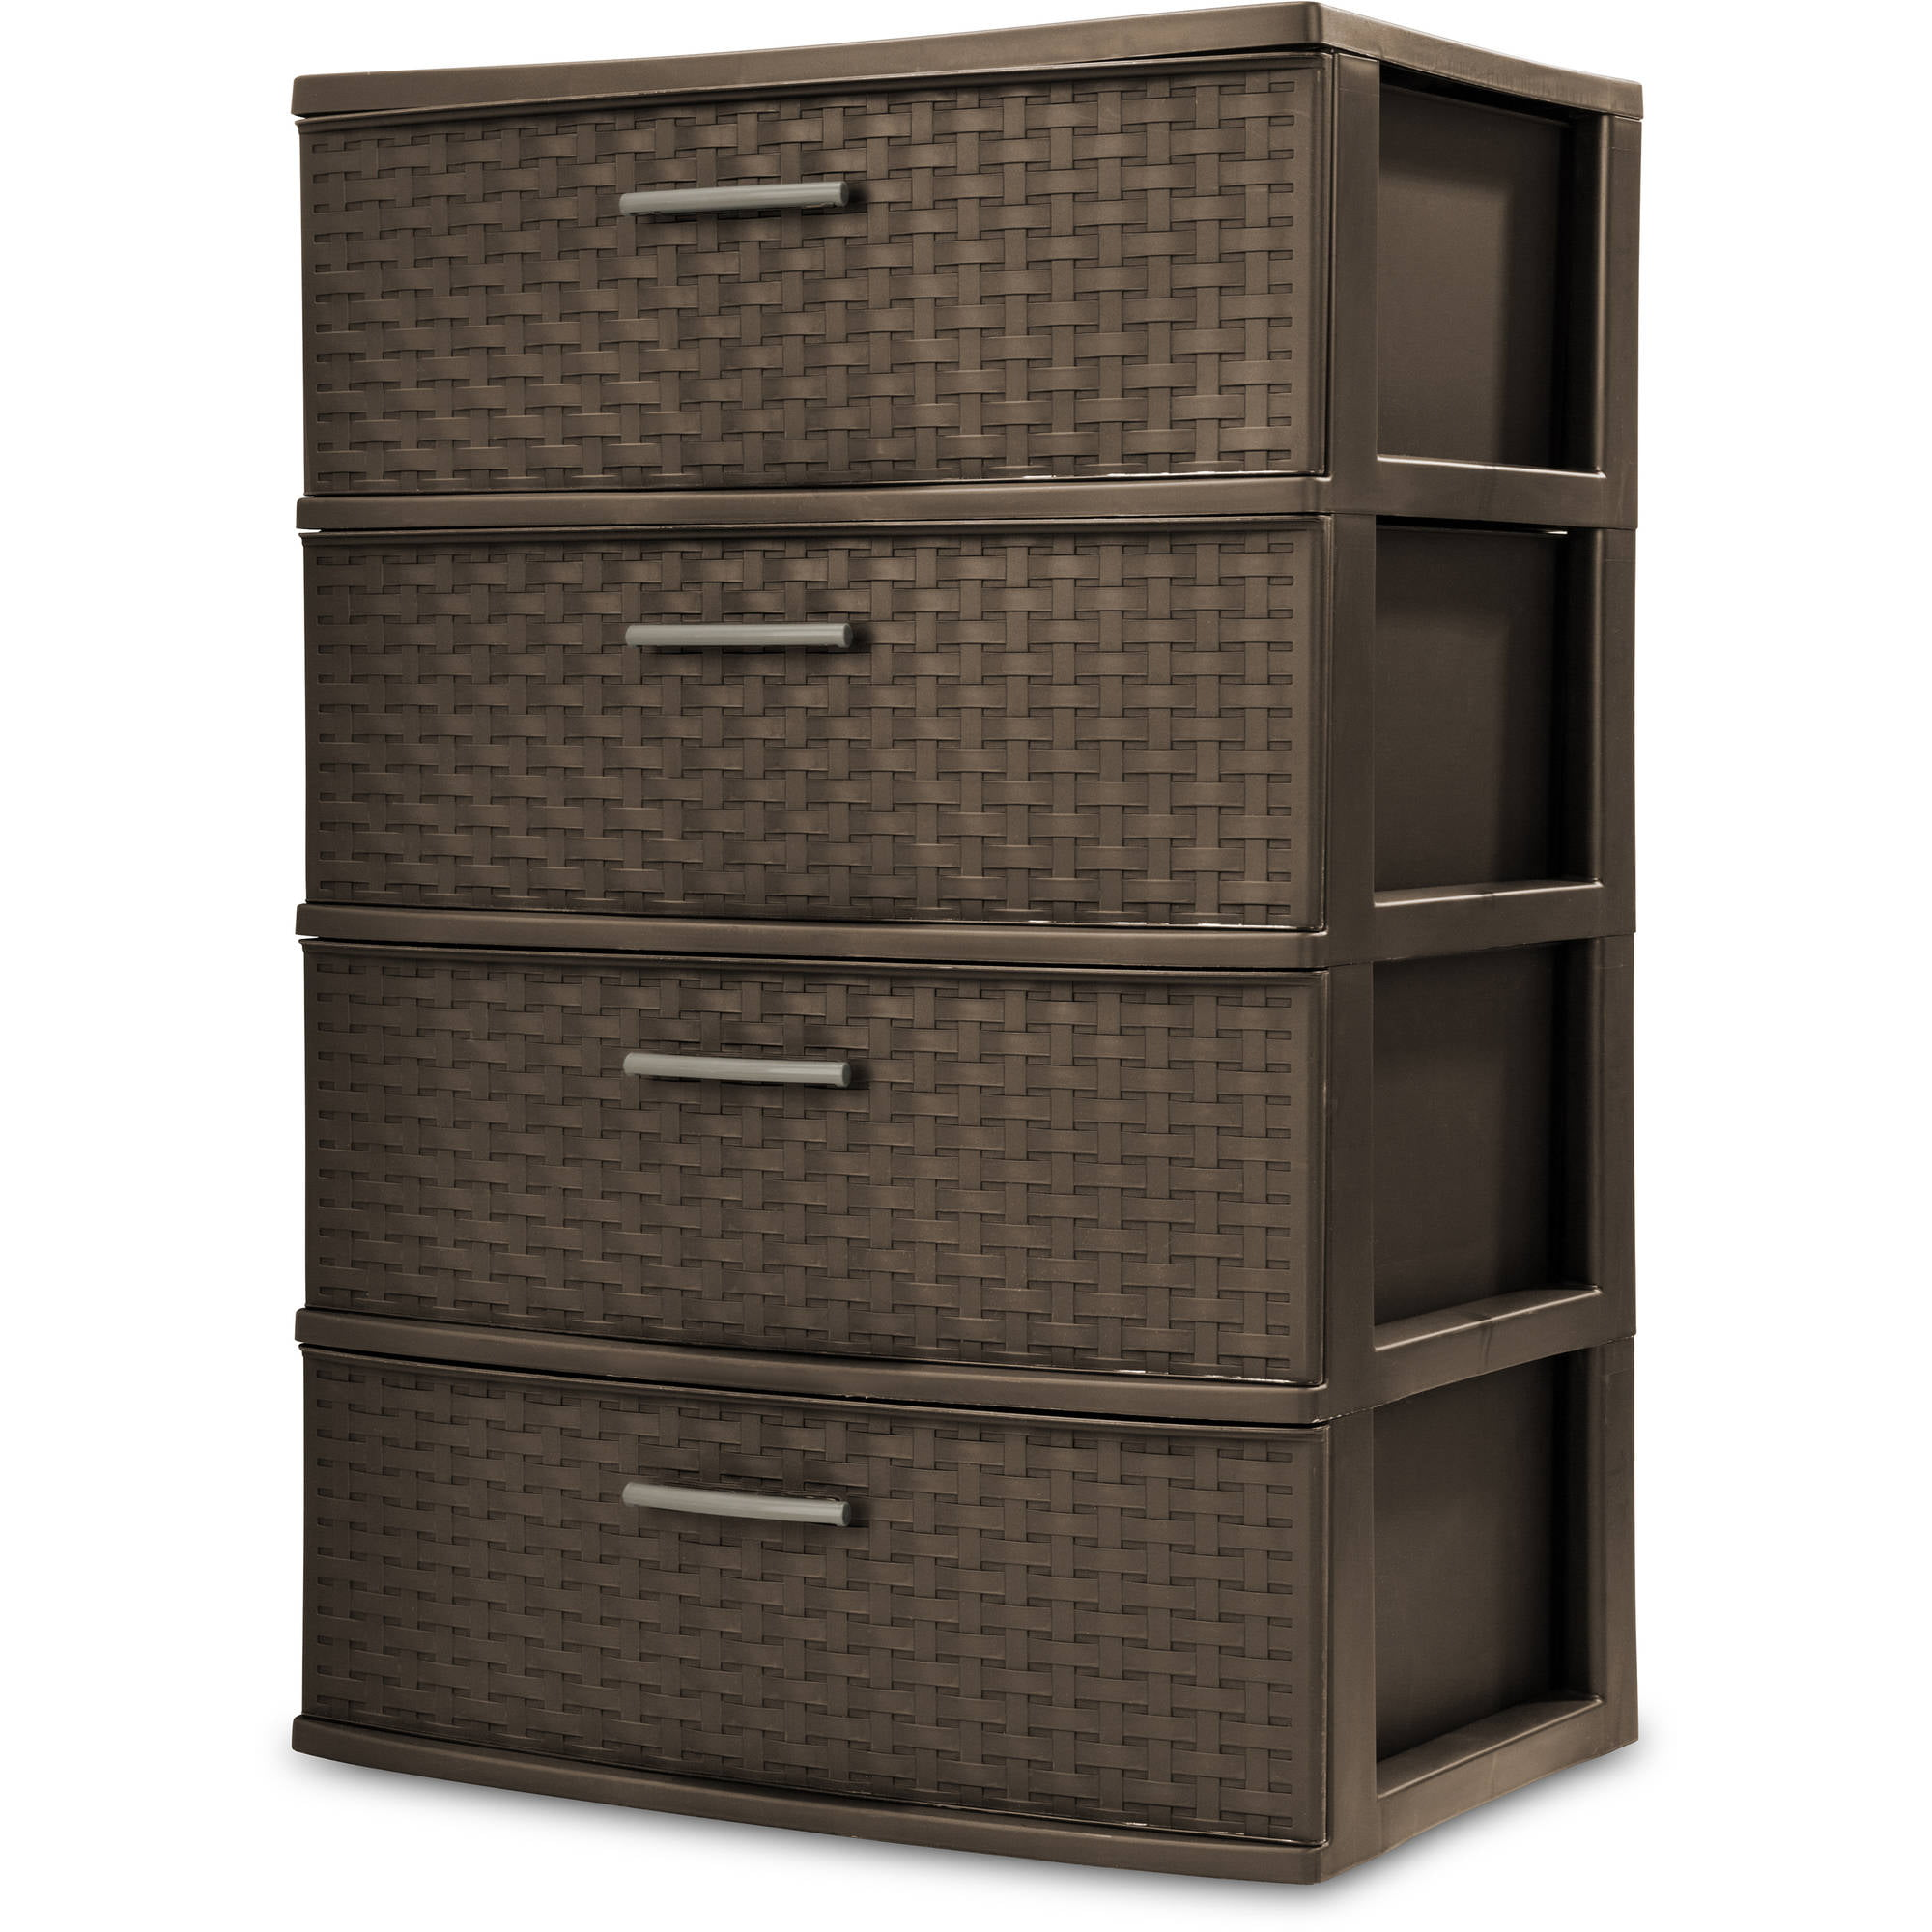 regard organizer to inspiring drawers drawer stackable simple with for stacking small storage ideas x plastic dimensions